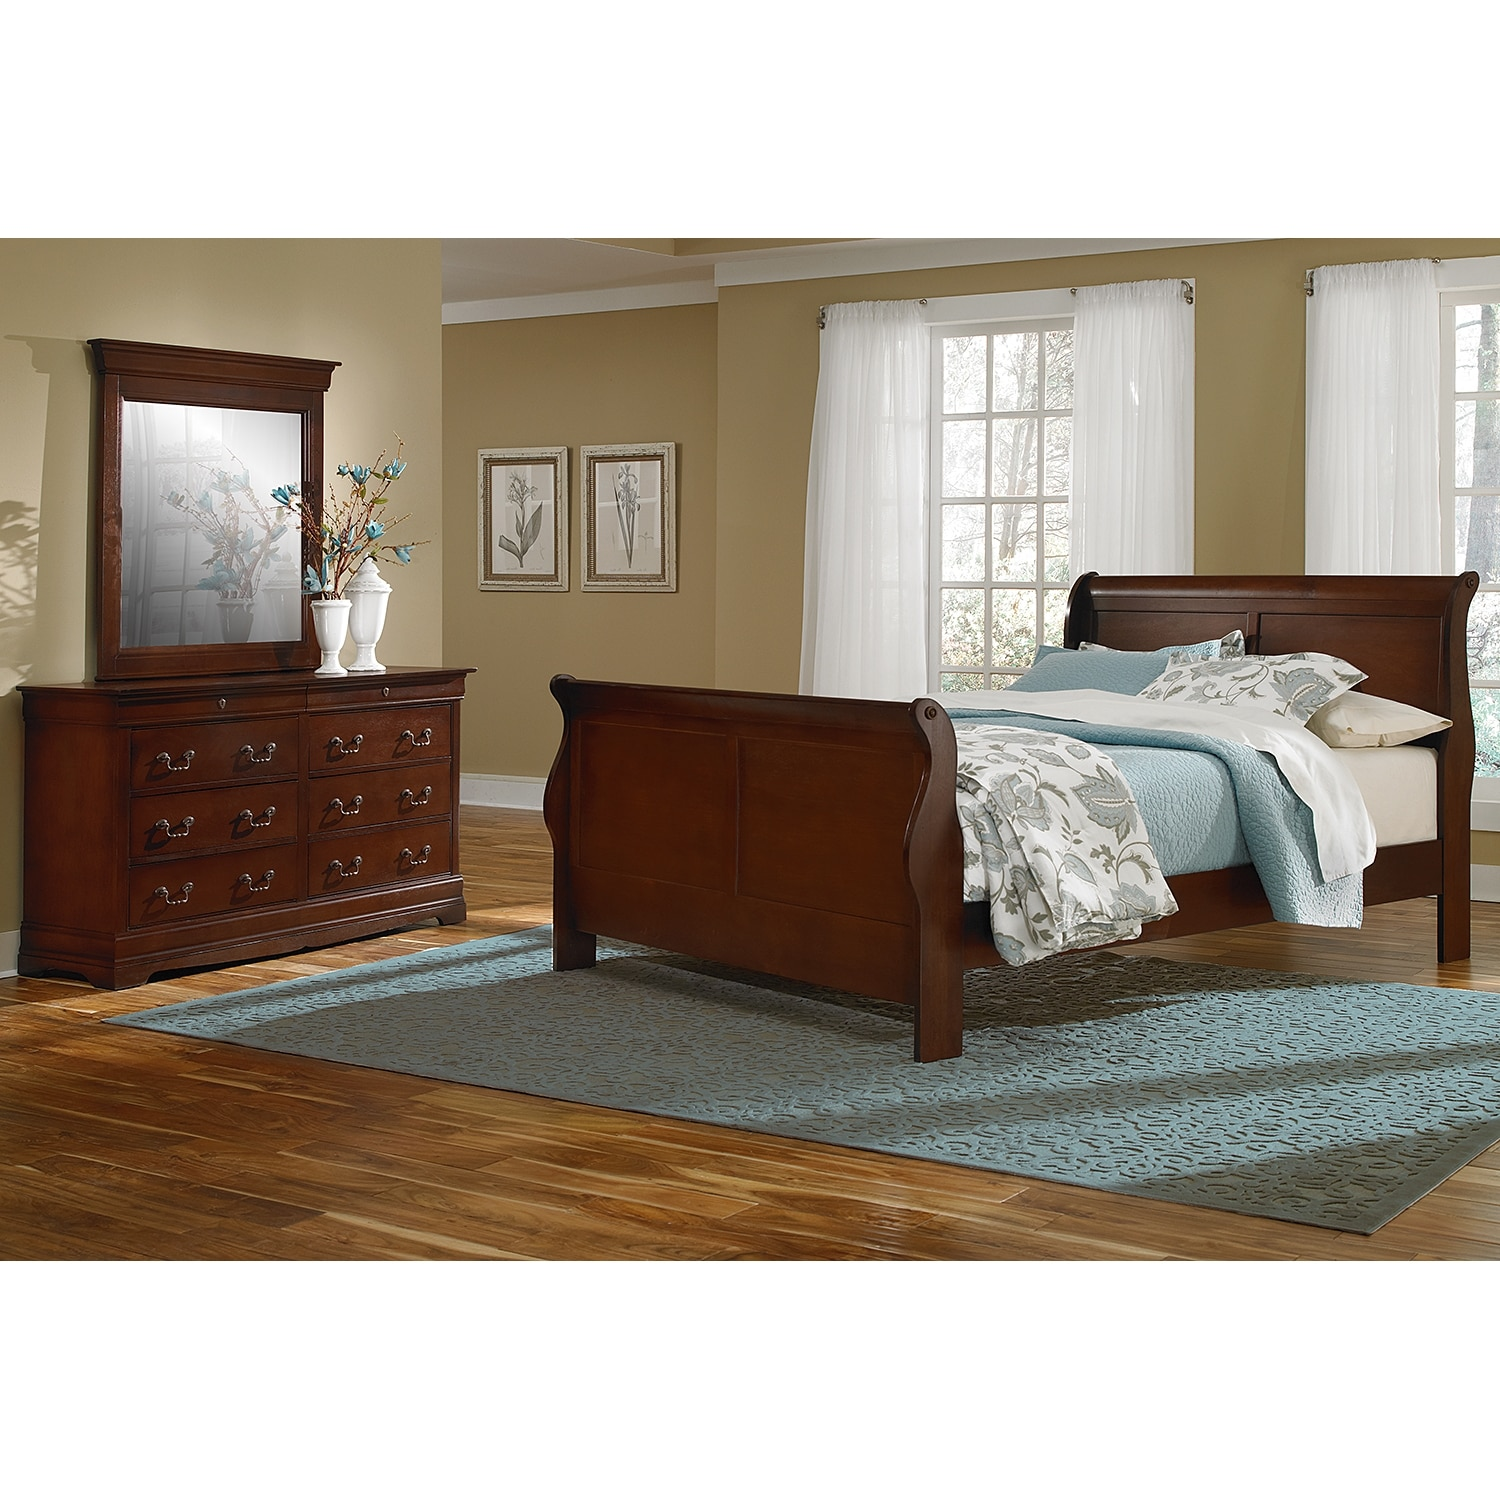 ... Cherry II Kids Furniture 5 Pc. Twin Bedroom - Value City Furniture